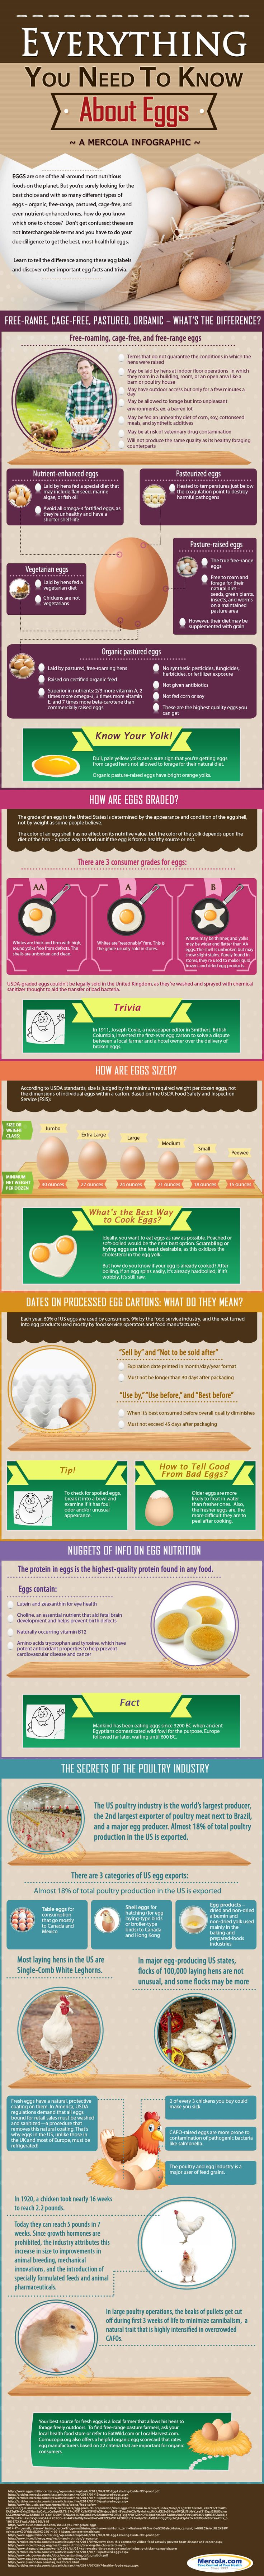 eggs-nutrition-facts-highres.jpg 850×8,296 pixels